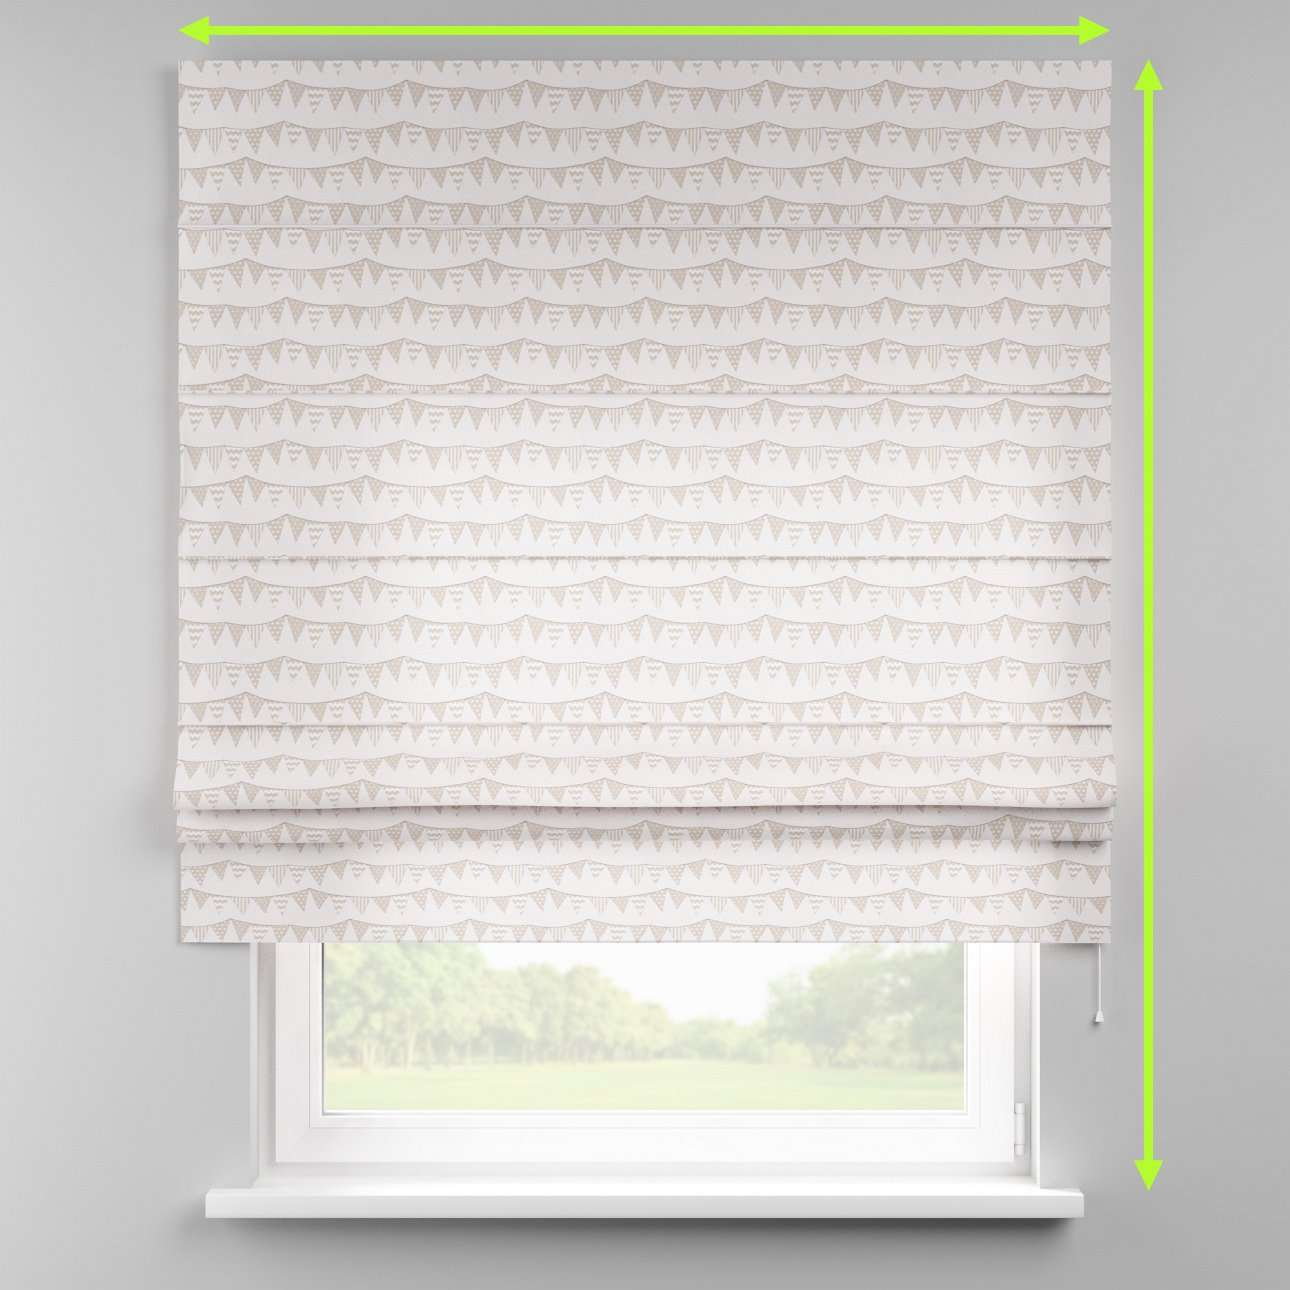 Padva roman blind  in collection Marina, fabric: 140-65